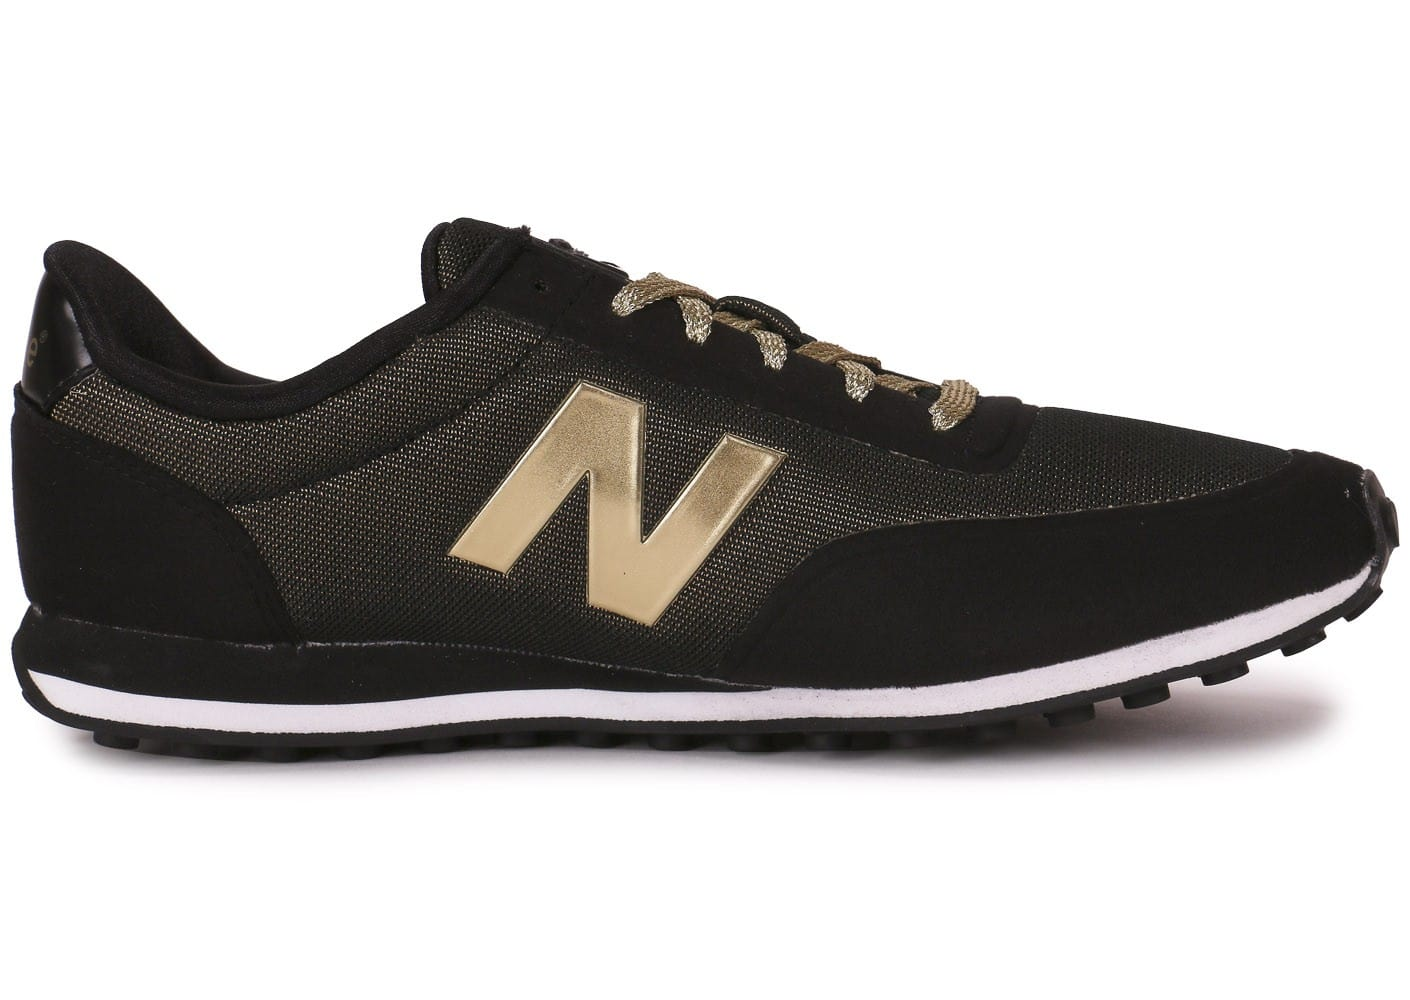 New Balance Wl410 Noir Et Or Chaussures Chaussures